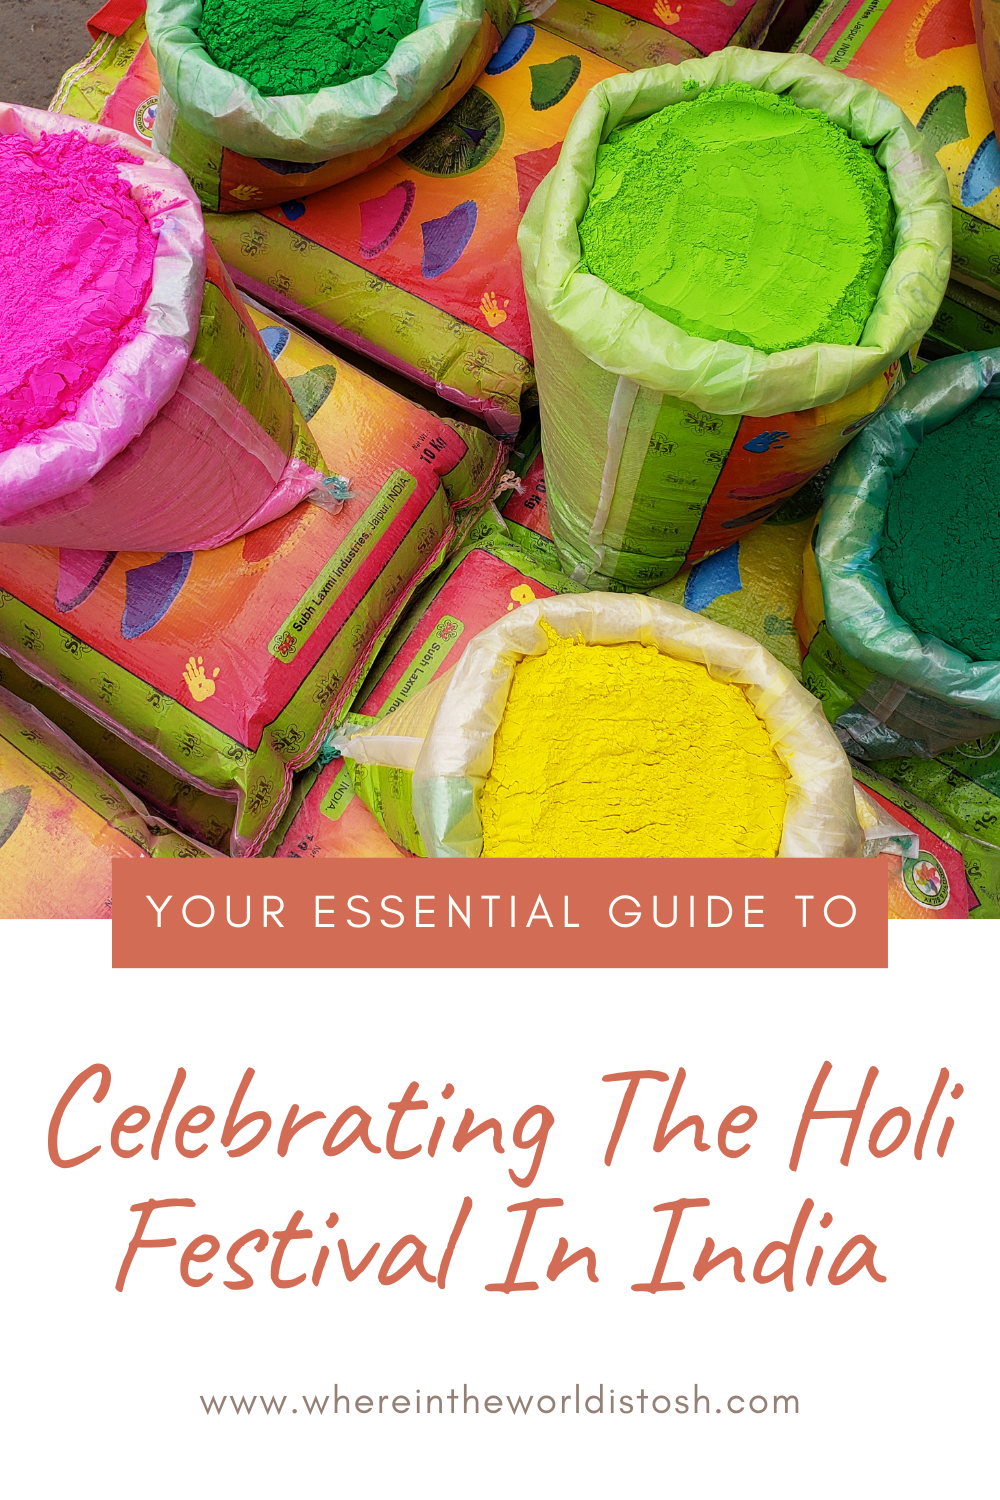 Your Essential Guide To Celebrating The Holi Festival In India